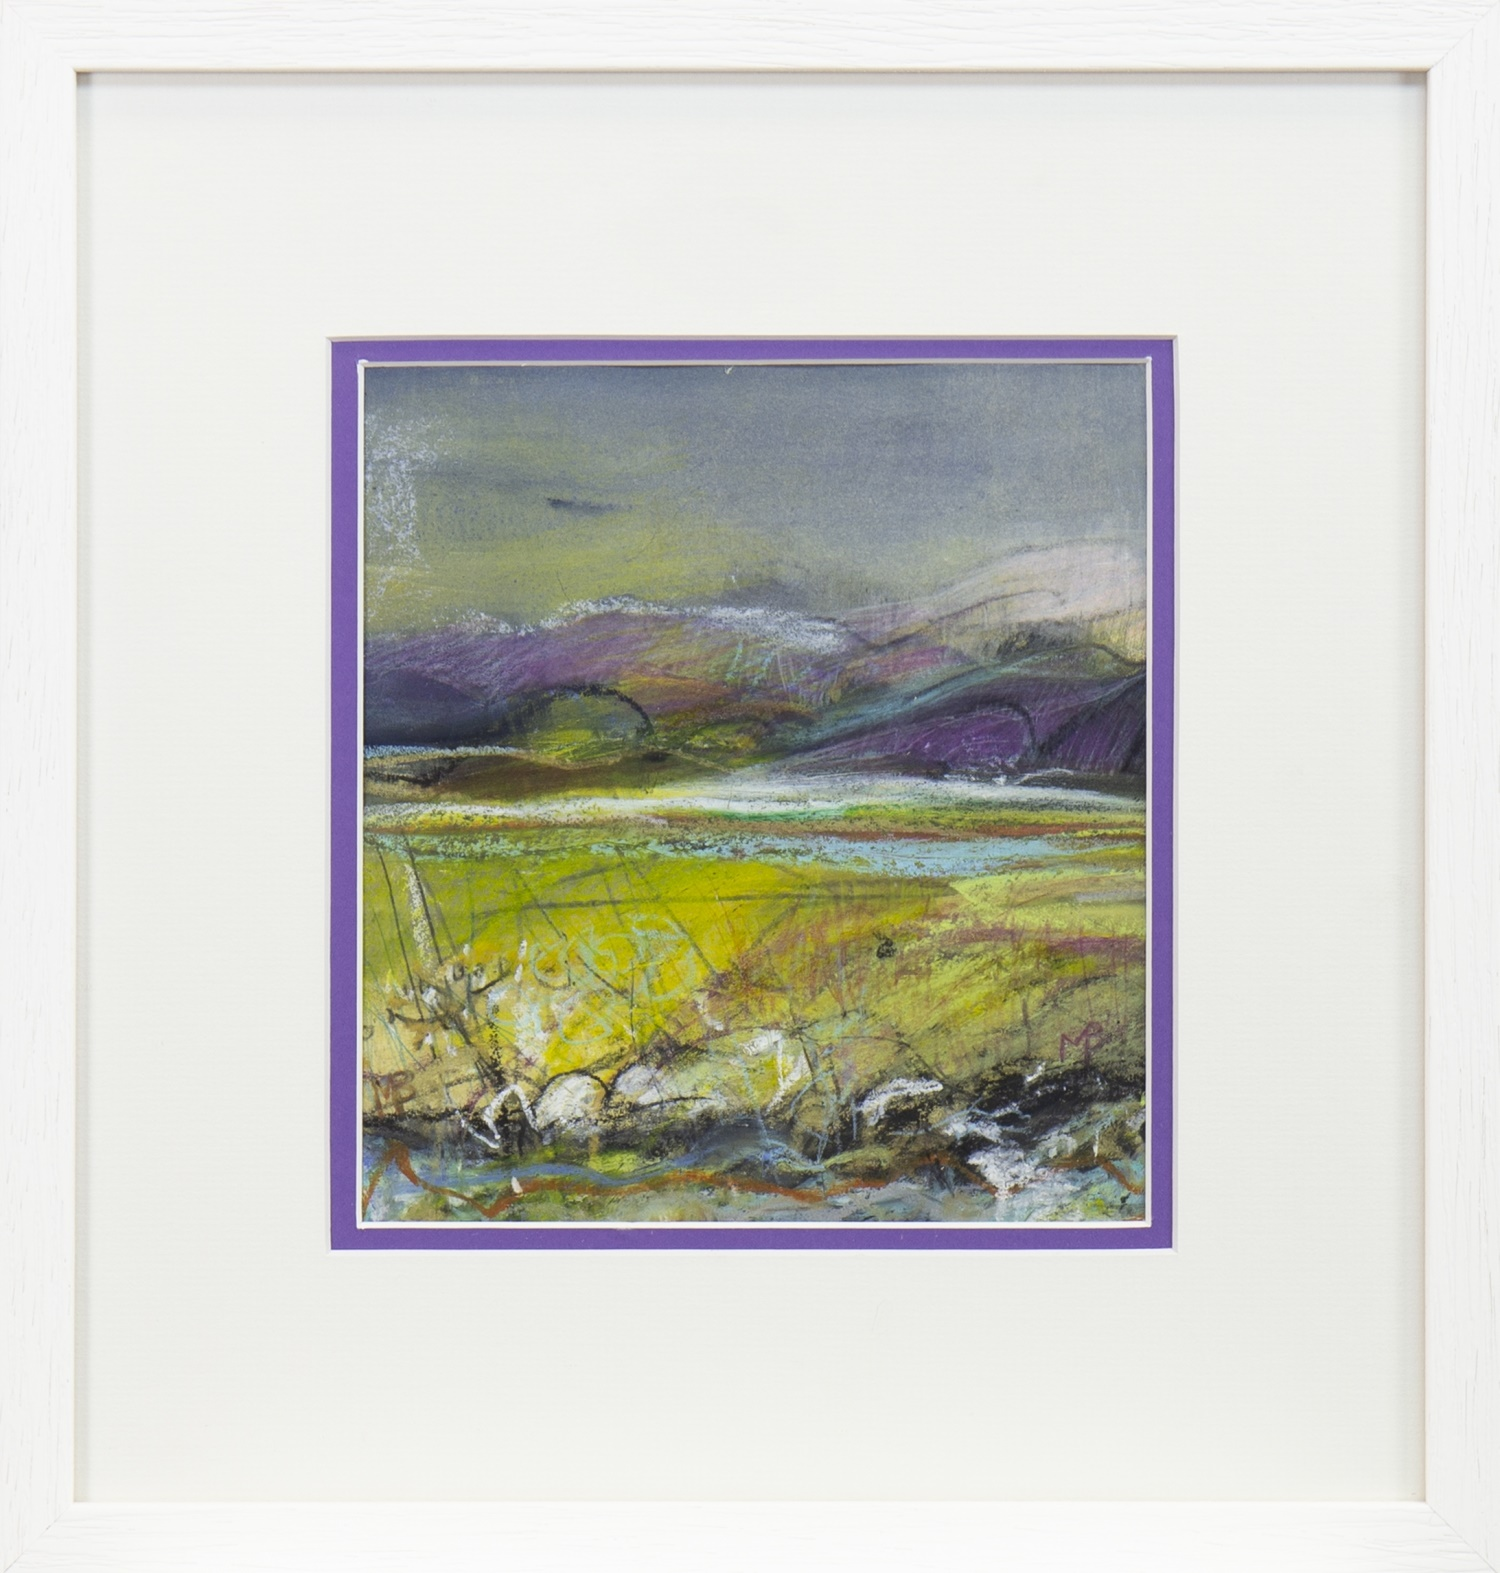 SUNLIT FIELDS, A MIXED MEDIA BY MAY BYRNE